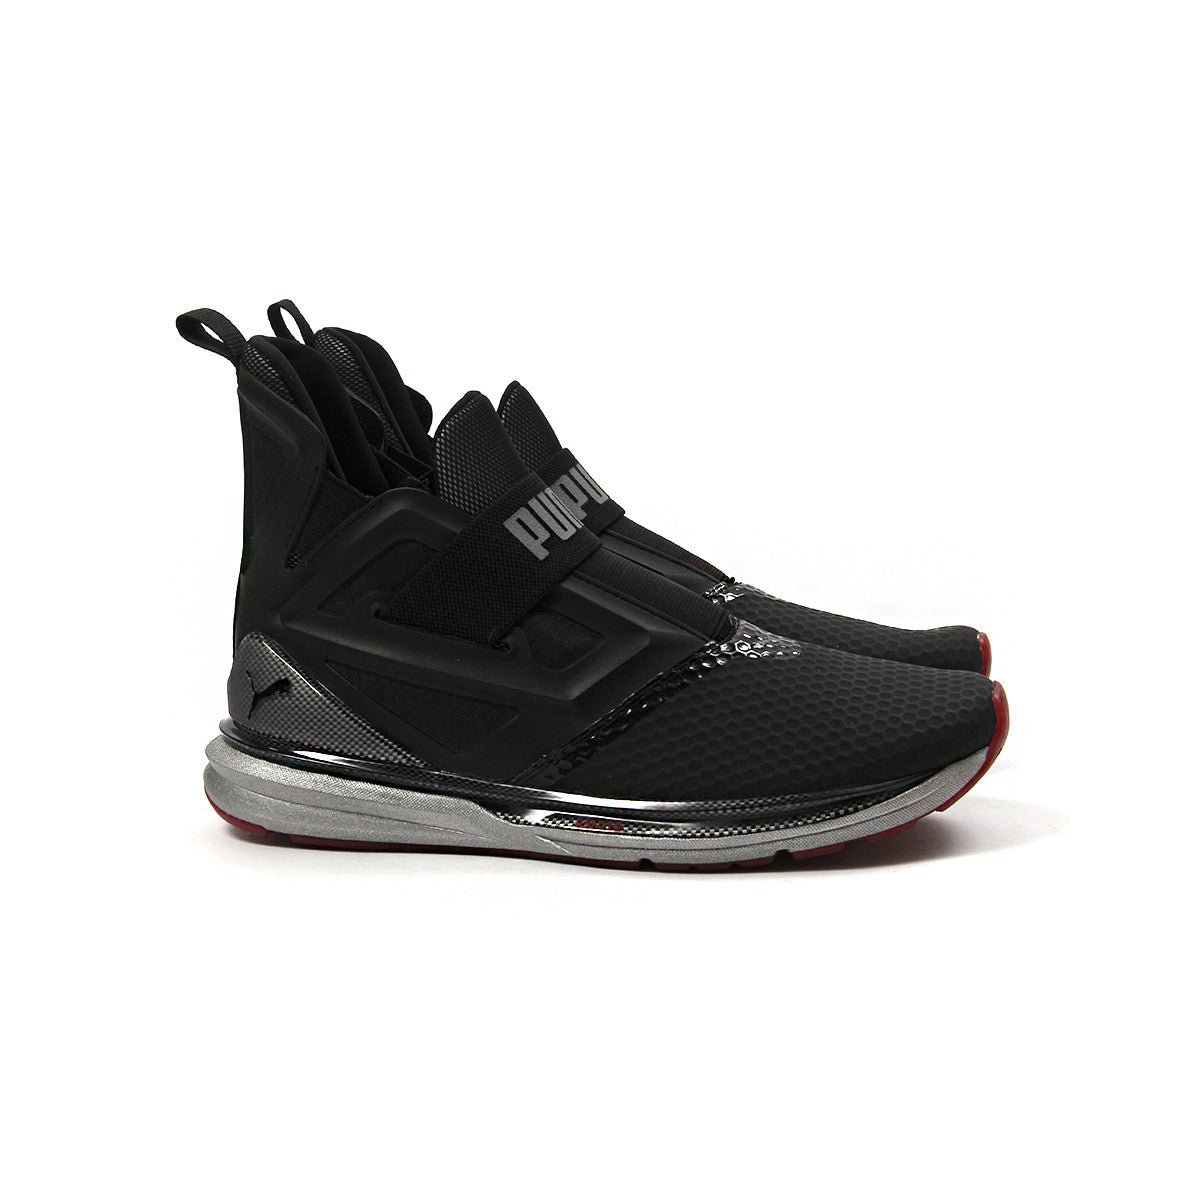 Puma Ignite Limitless Hi Tech Extreme